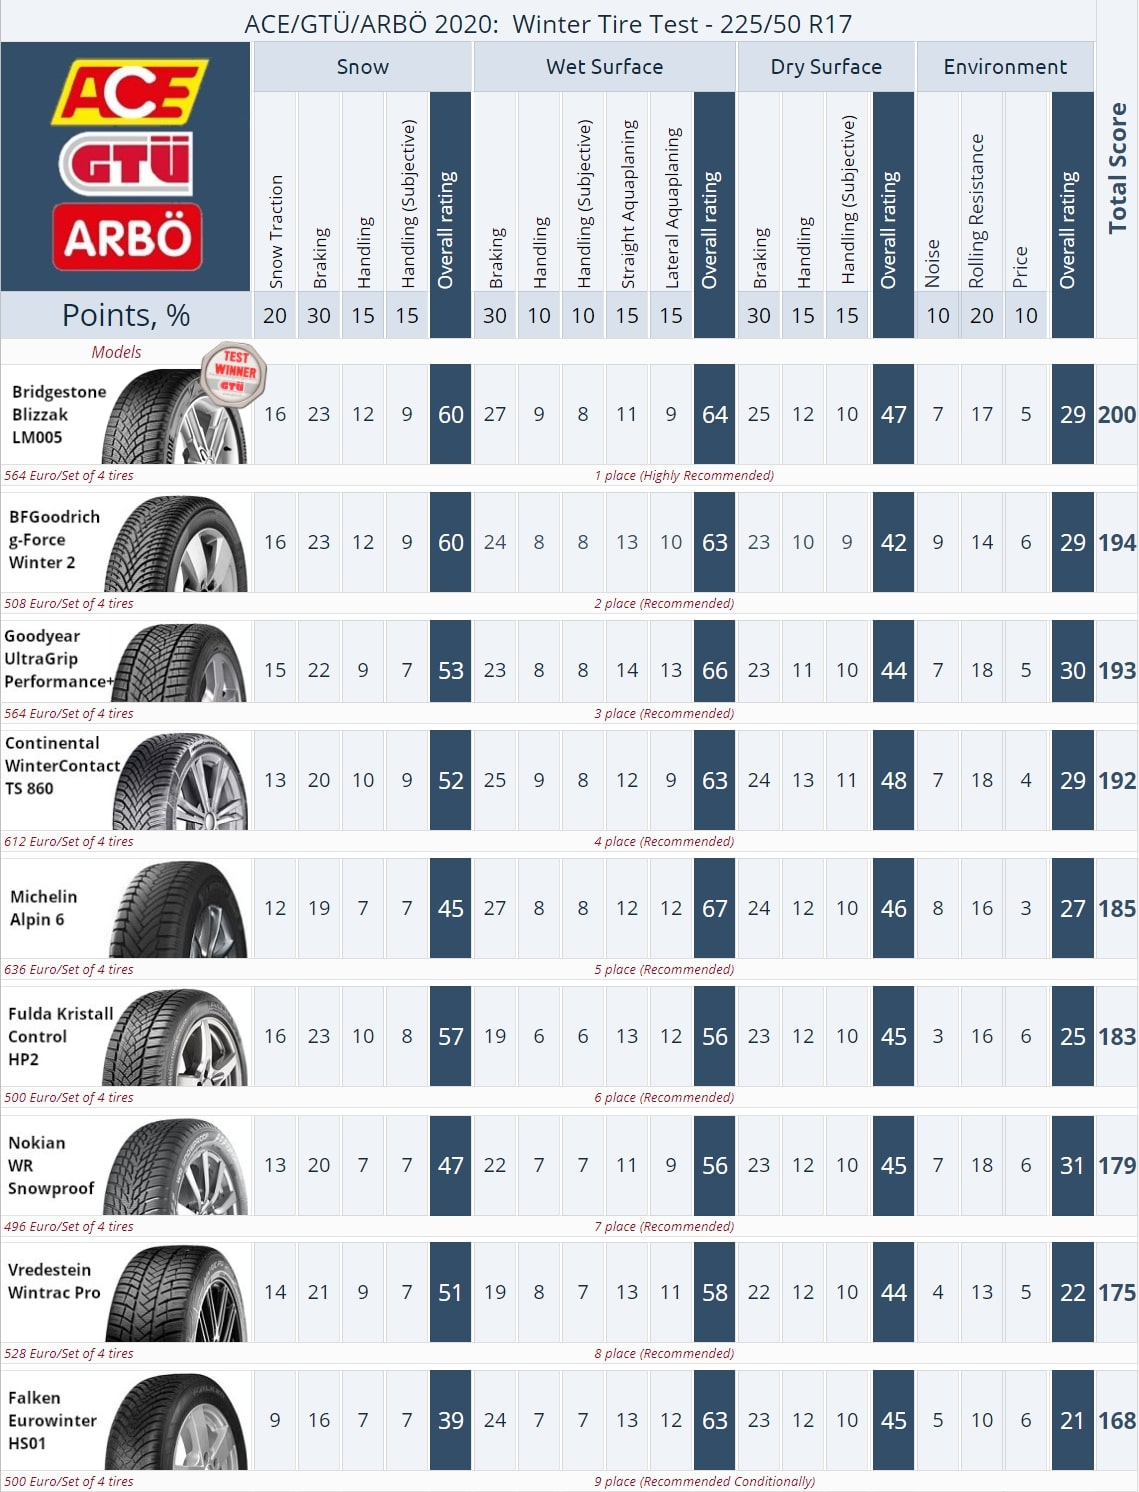 Result summary of the 225/50 R17 winter tire test 2020. ACE, GTÜ, ARBÖ. Click to enlarge.